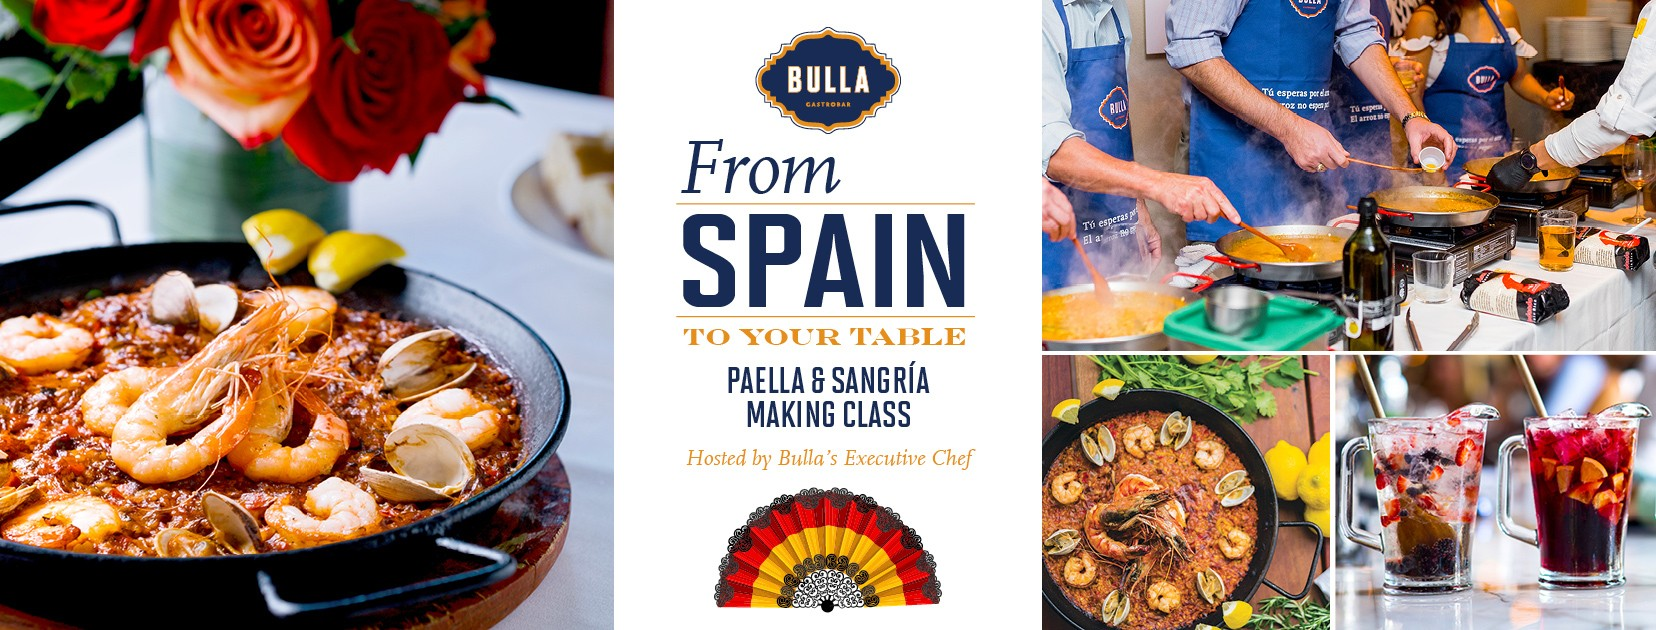 reads from spain to your table hosted by bulla executive chef paella and sangria making class on the left a photo so traditional rice dish is show and on the right another paella is shown on the left bottom corner, on the right side of it two pitchers of sangria are shown, one is red and the other is white, on the top of these two images, there four individuals without their face shown cooking a rice dish in a paella pan wearing blue bulla logo aprons